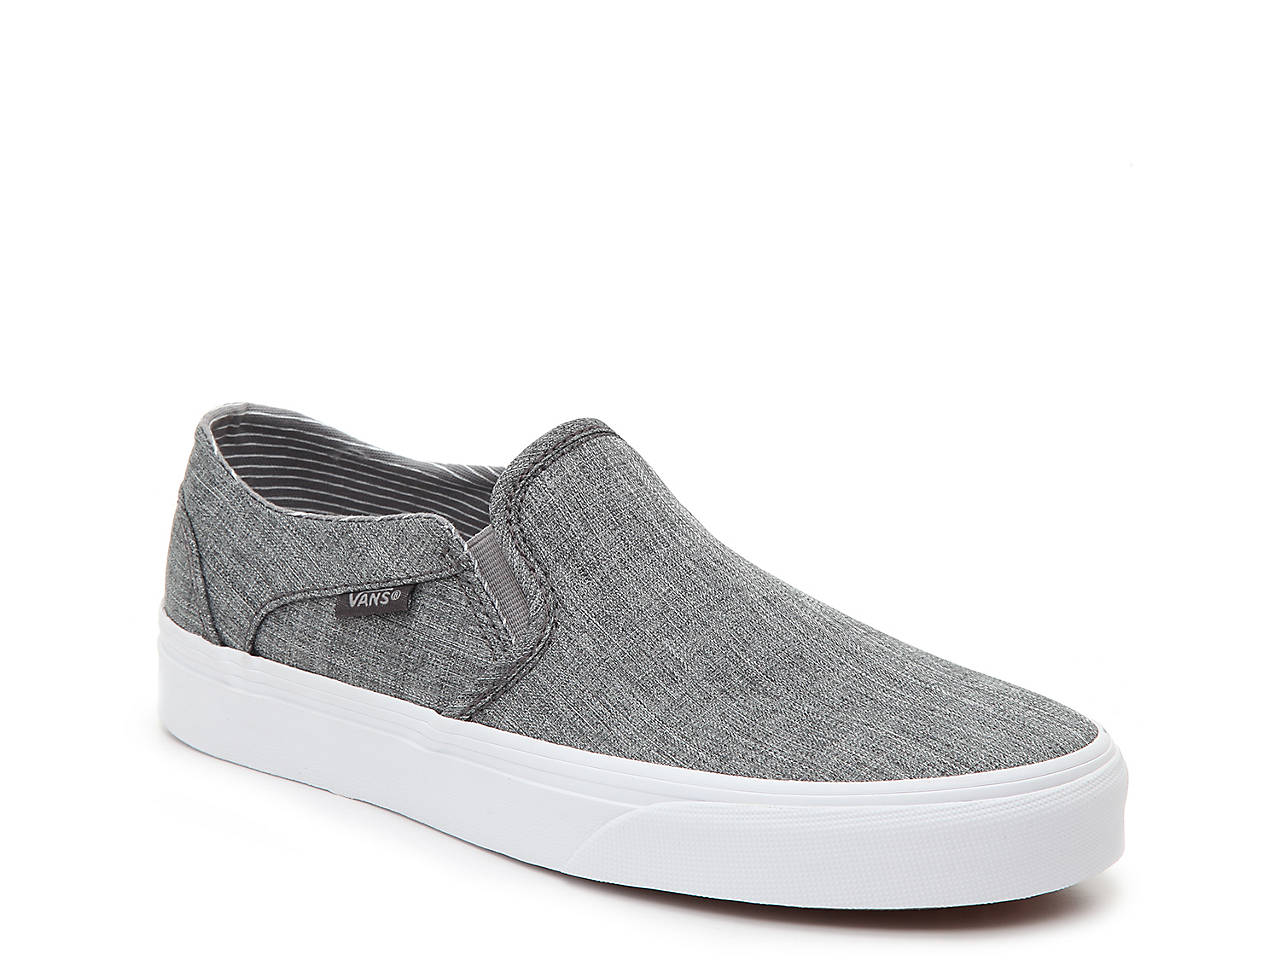 8b0560c247456e Vans Asher Slip-On Sneaker - Women s Women s Shoes